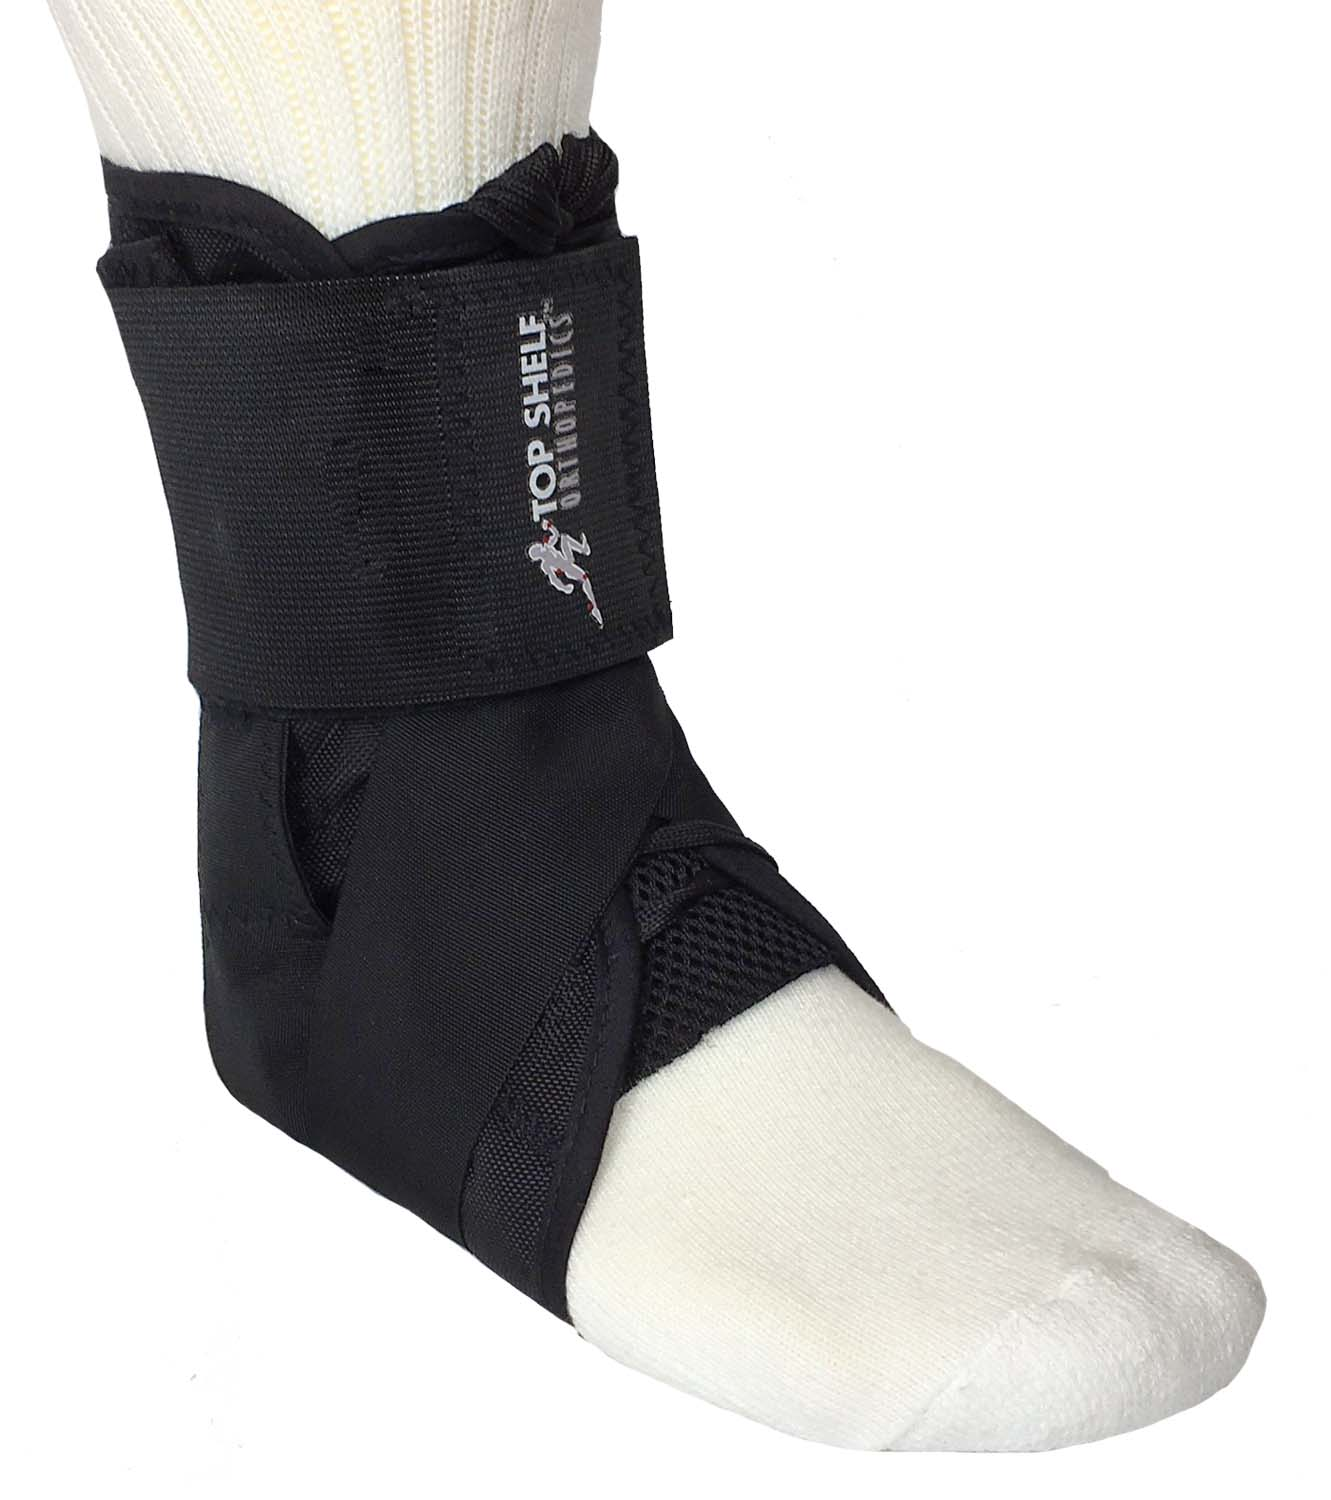 Hinged Ankle Stabilizer